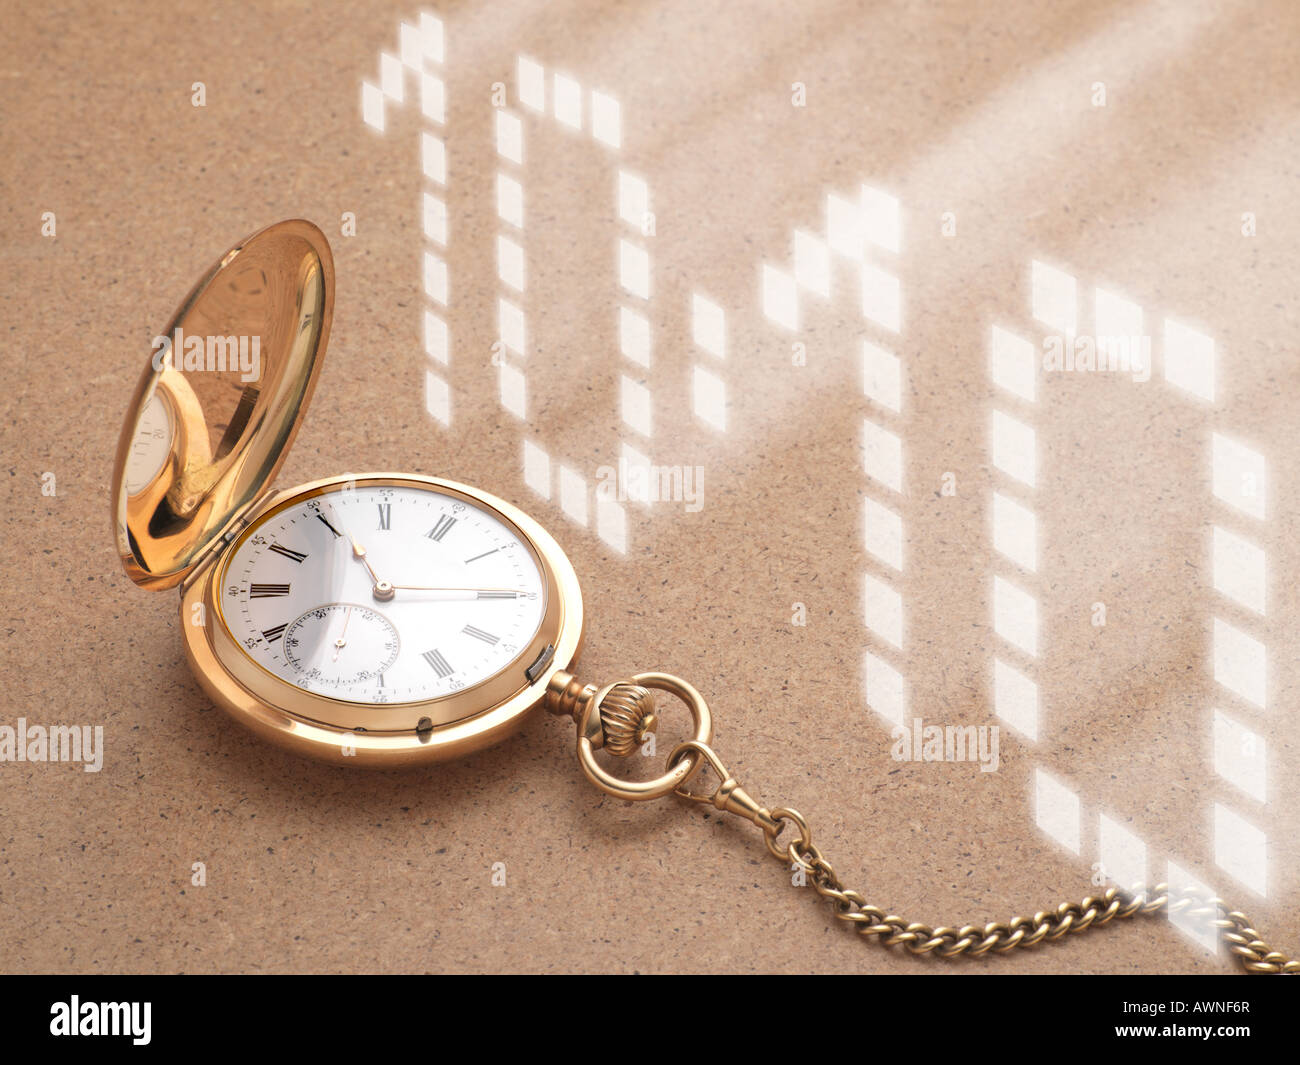 Pocket watch and digital time - Stock Image